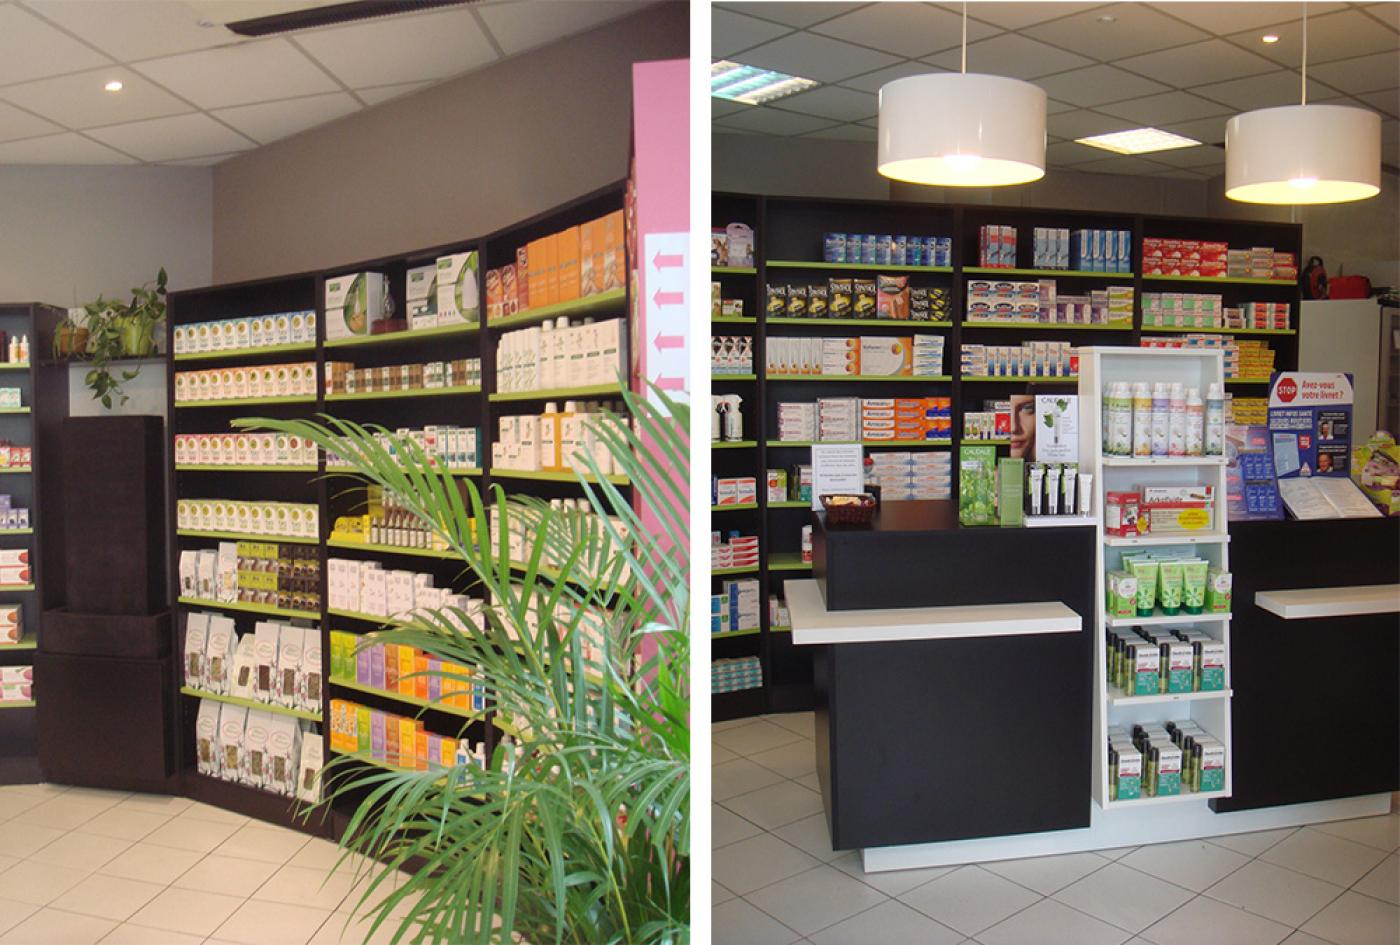 rénovation pharmacie lyon